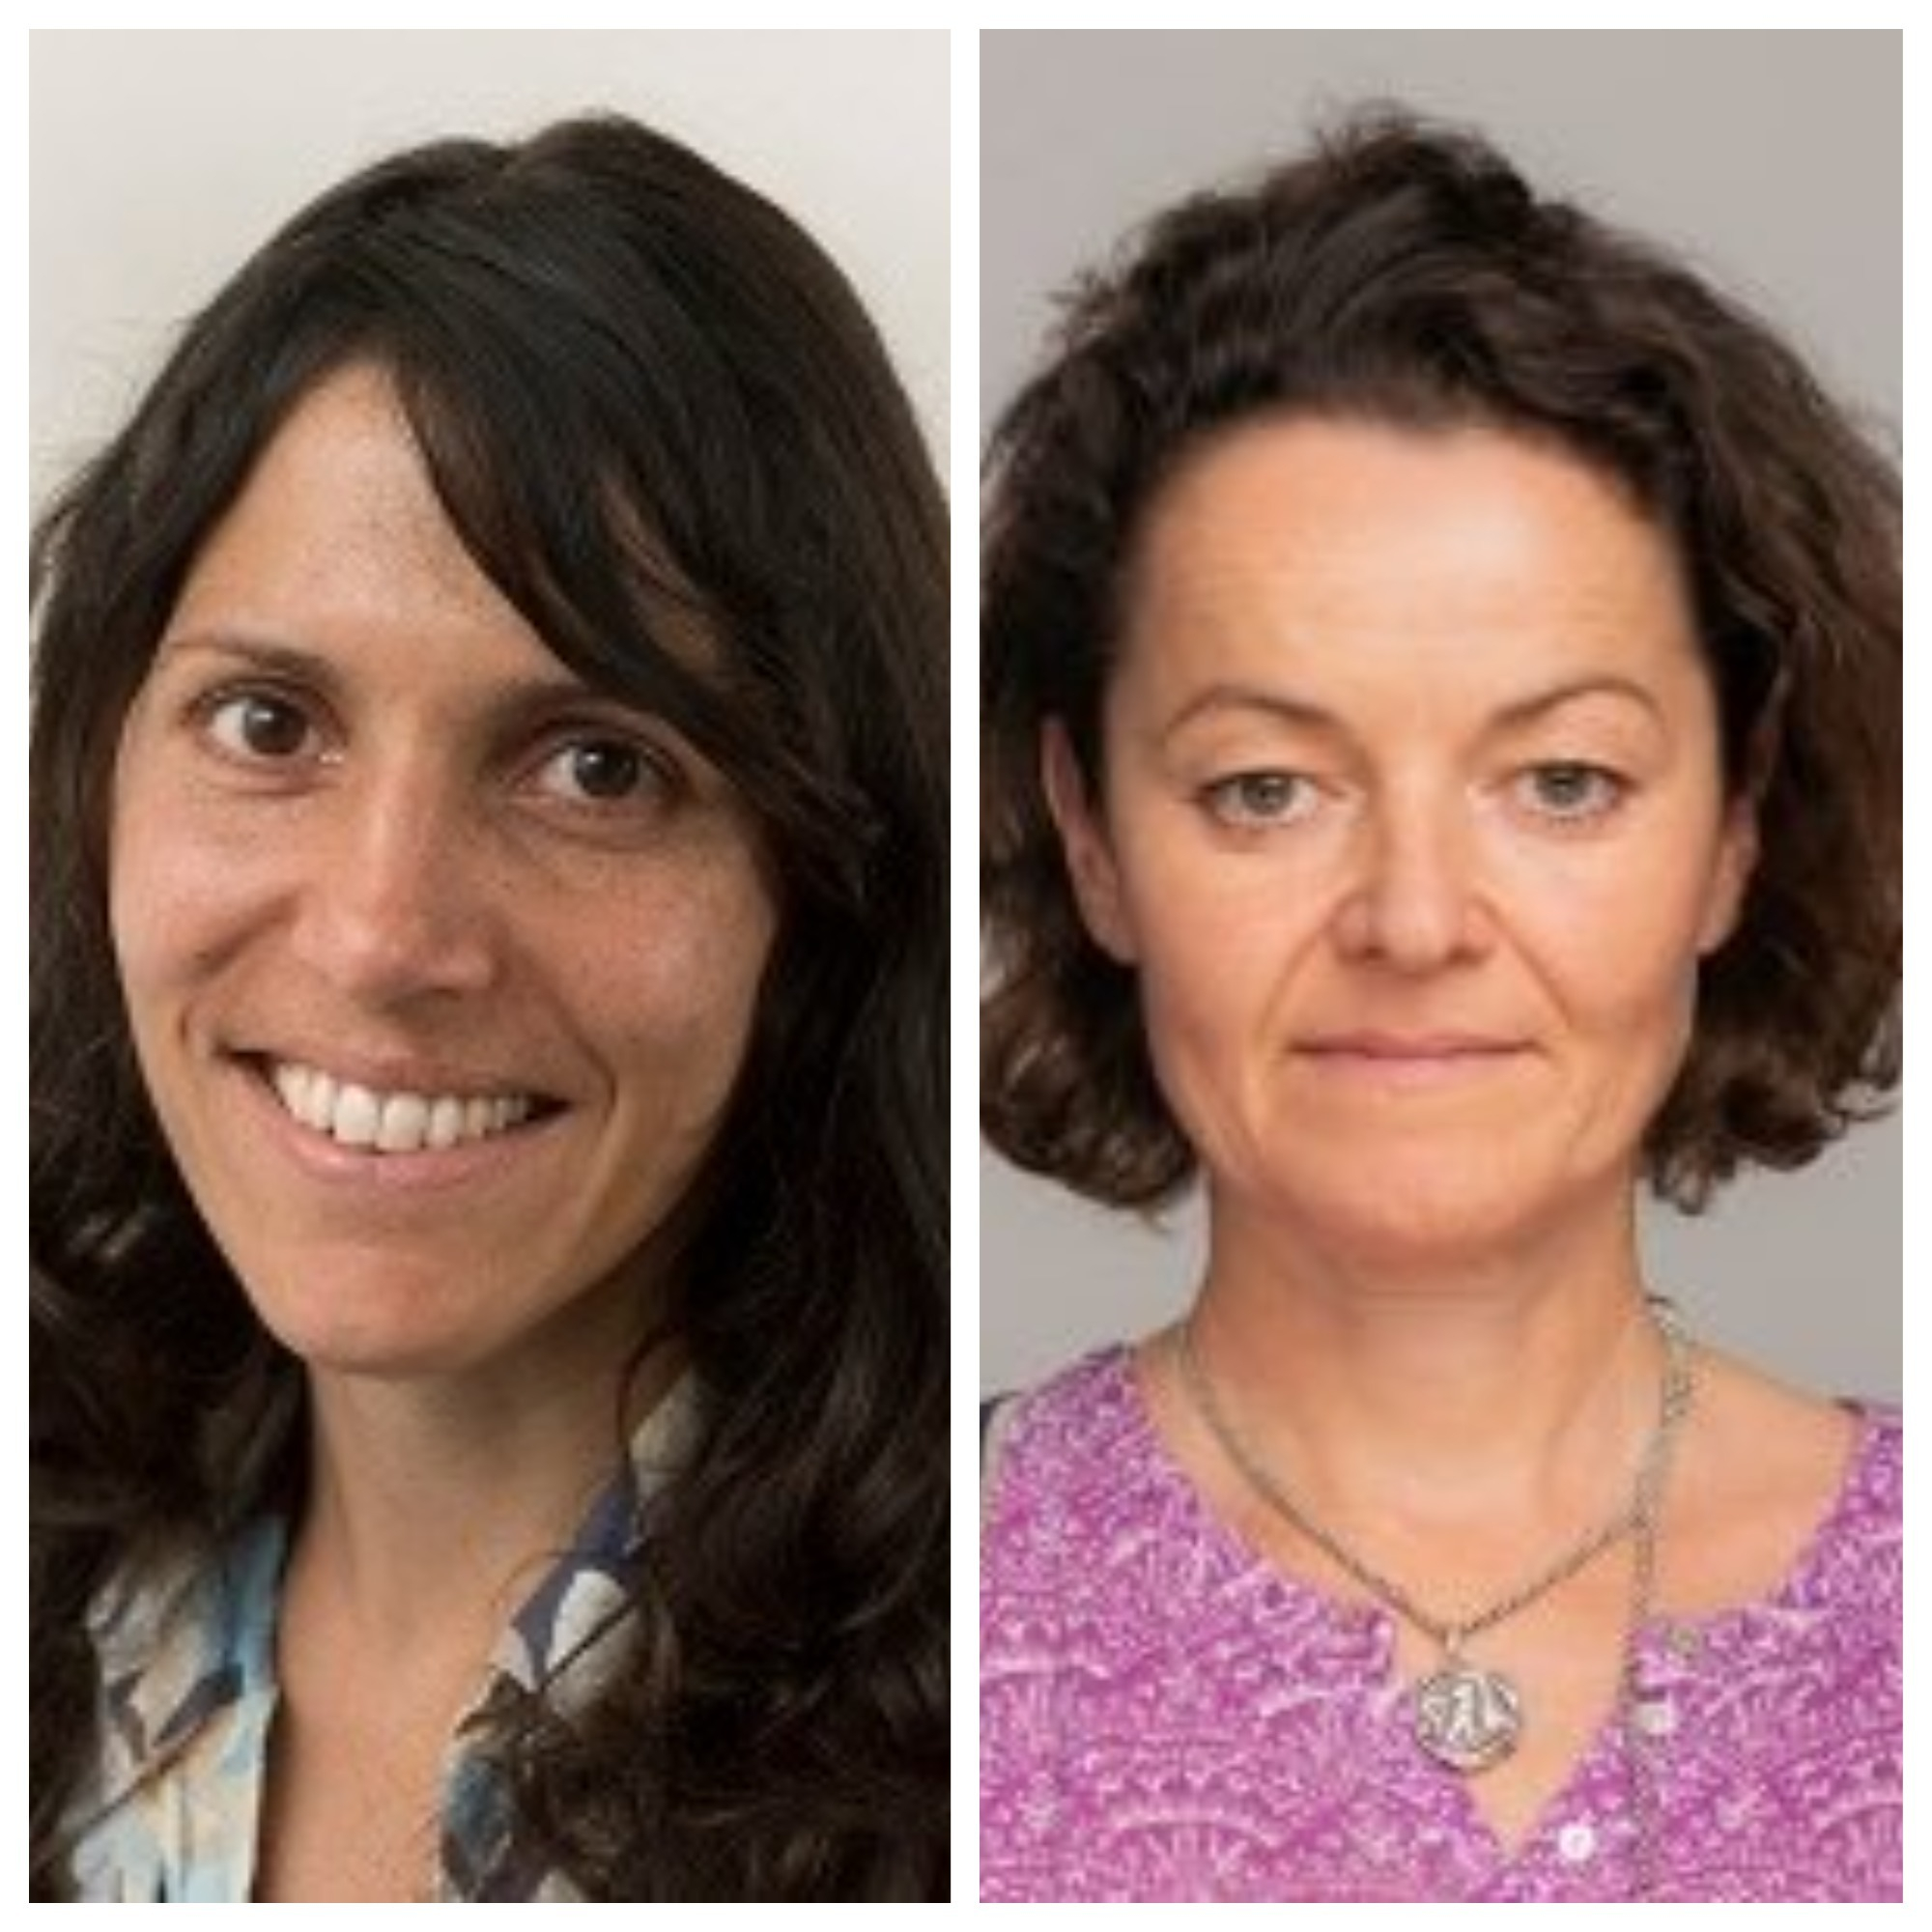 NEWS – Dr. Holly Joseph (Associate Professor of Language Education and Literacy Development, University of Reading) and Dr. Daisy Powell (Associate Professor in the Psychology of Written Language, University of Reading) jointly won the 2021 IoE Research Output Award